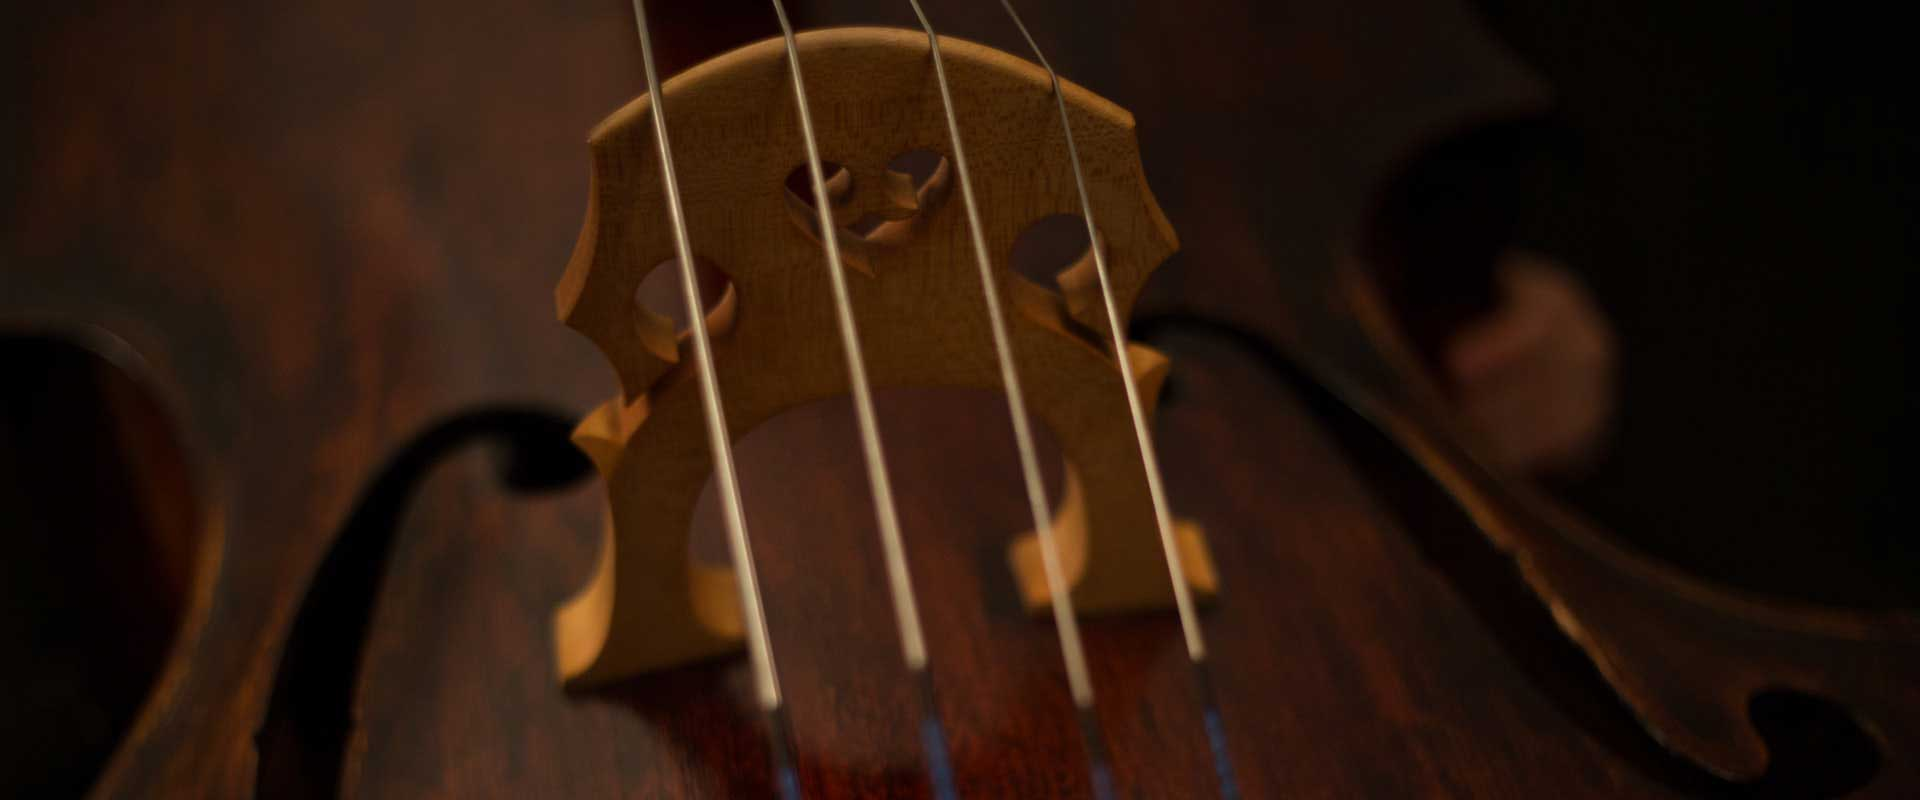 5 important tips for looking after your instrument